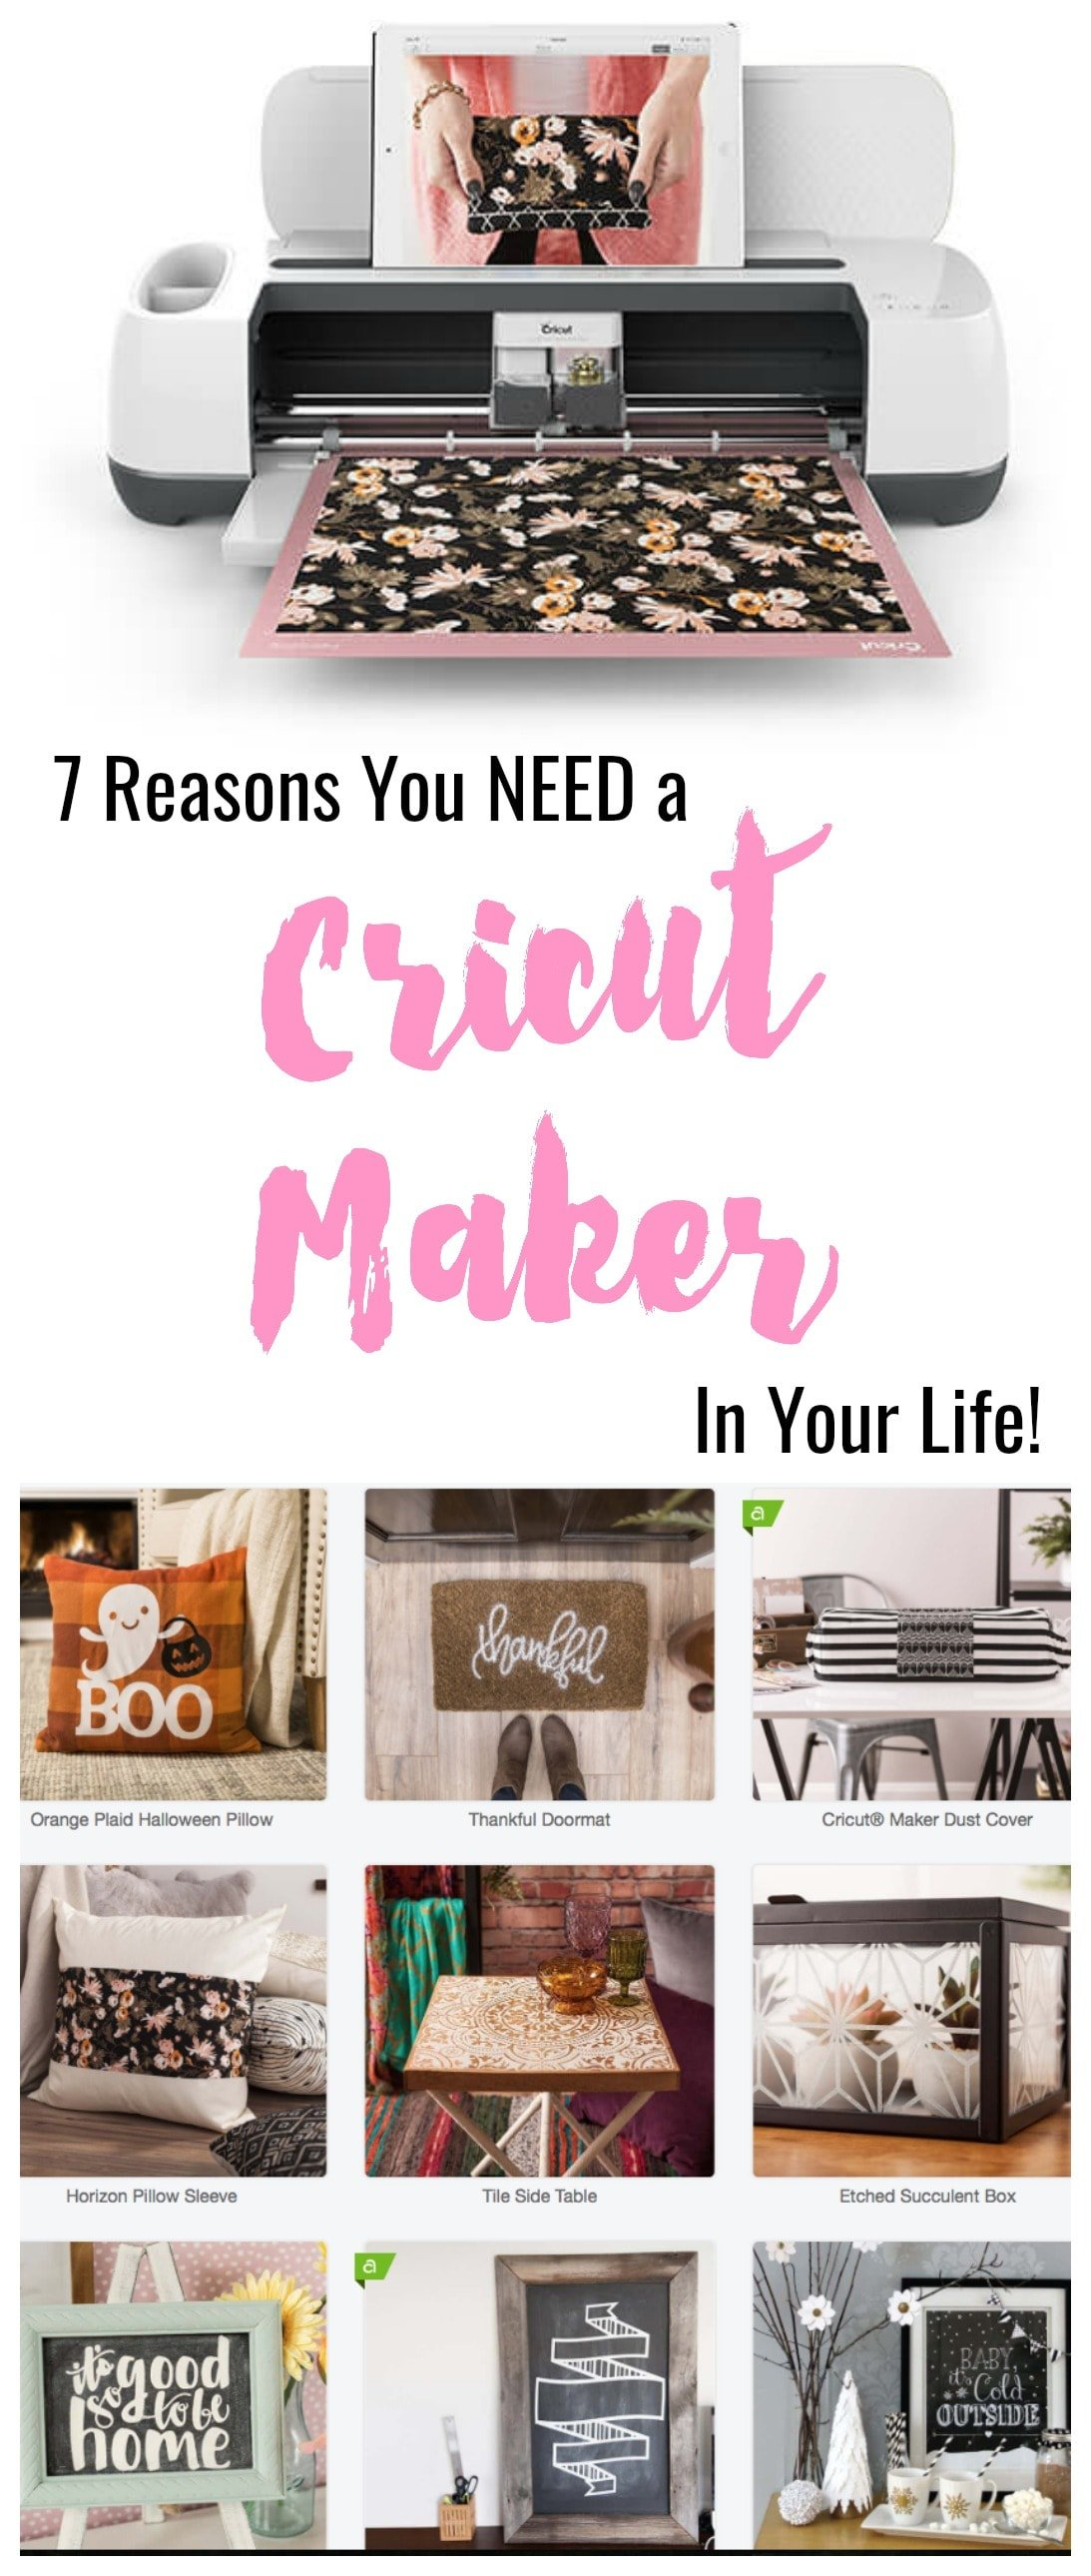 Why You NEED a Cricut Maker